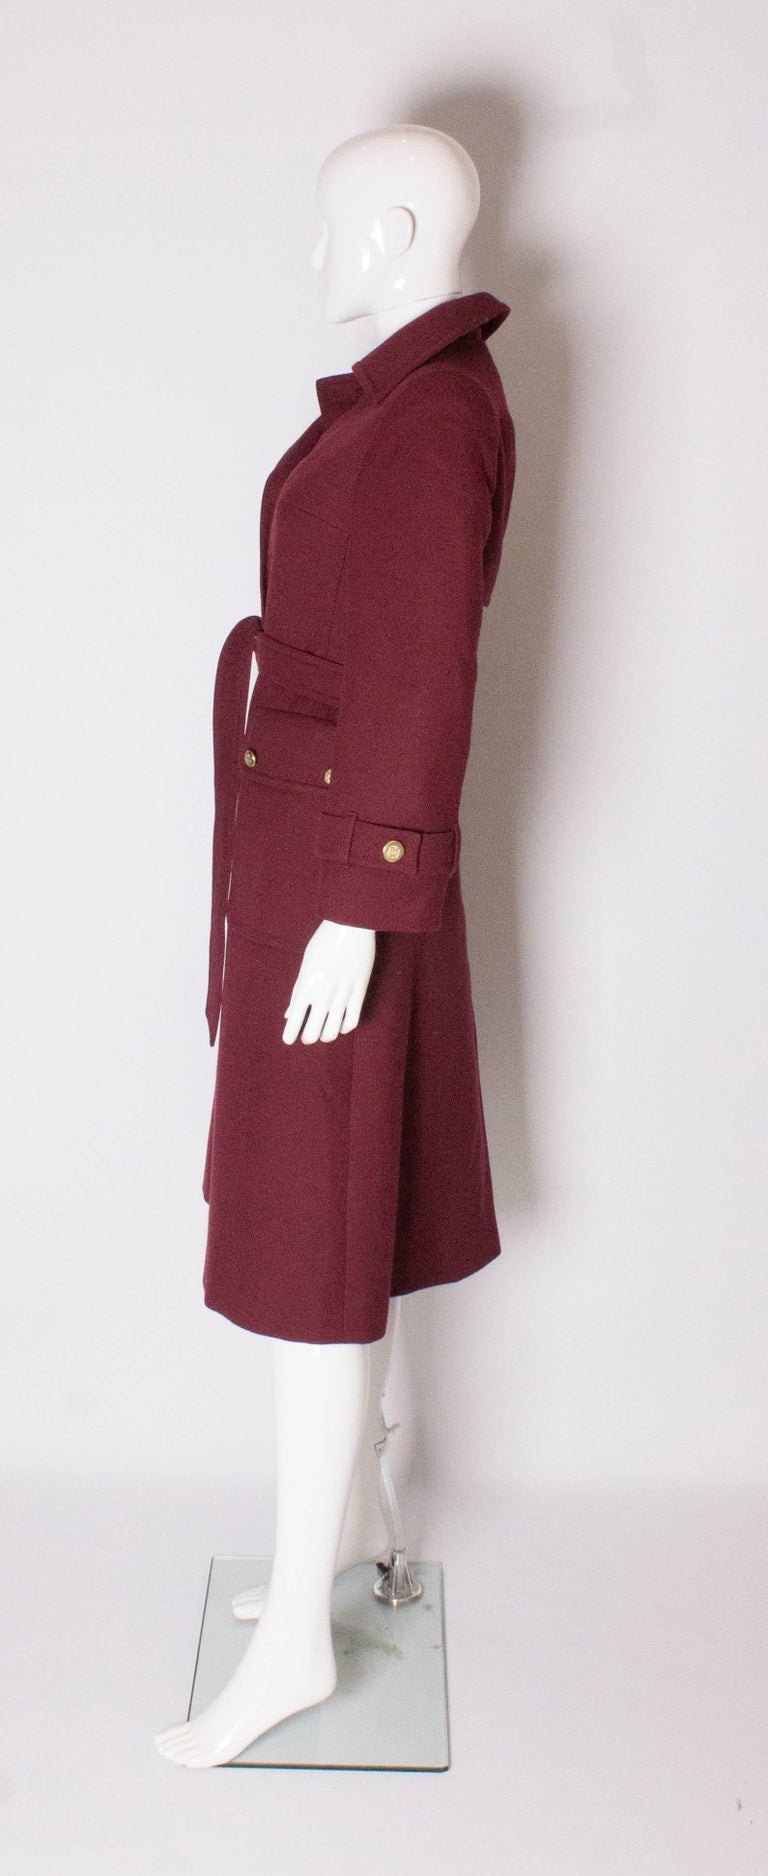 Burgundy Wool Coat by Aquascutum In Good Condition For Sale In London, GB